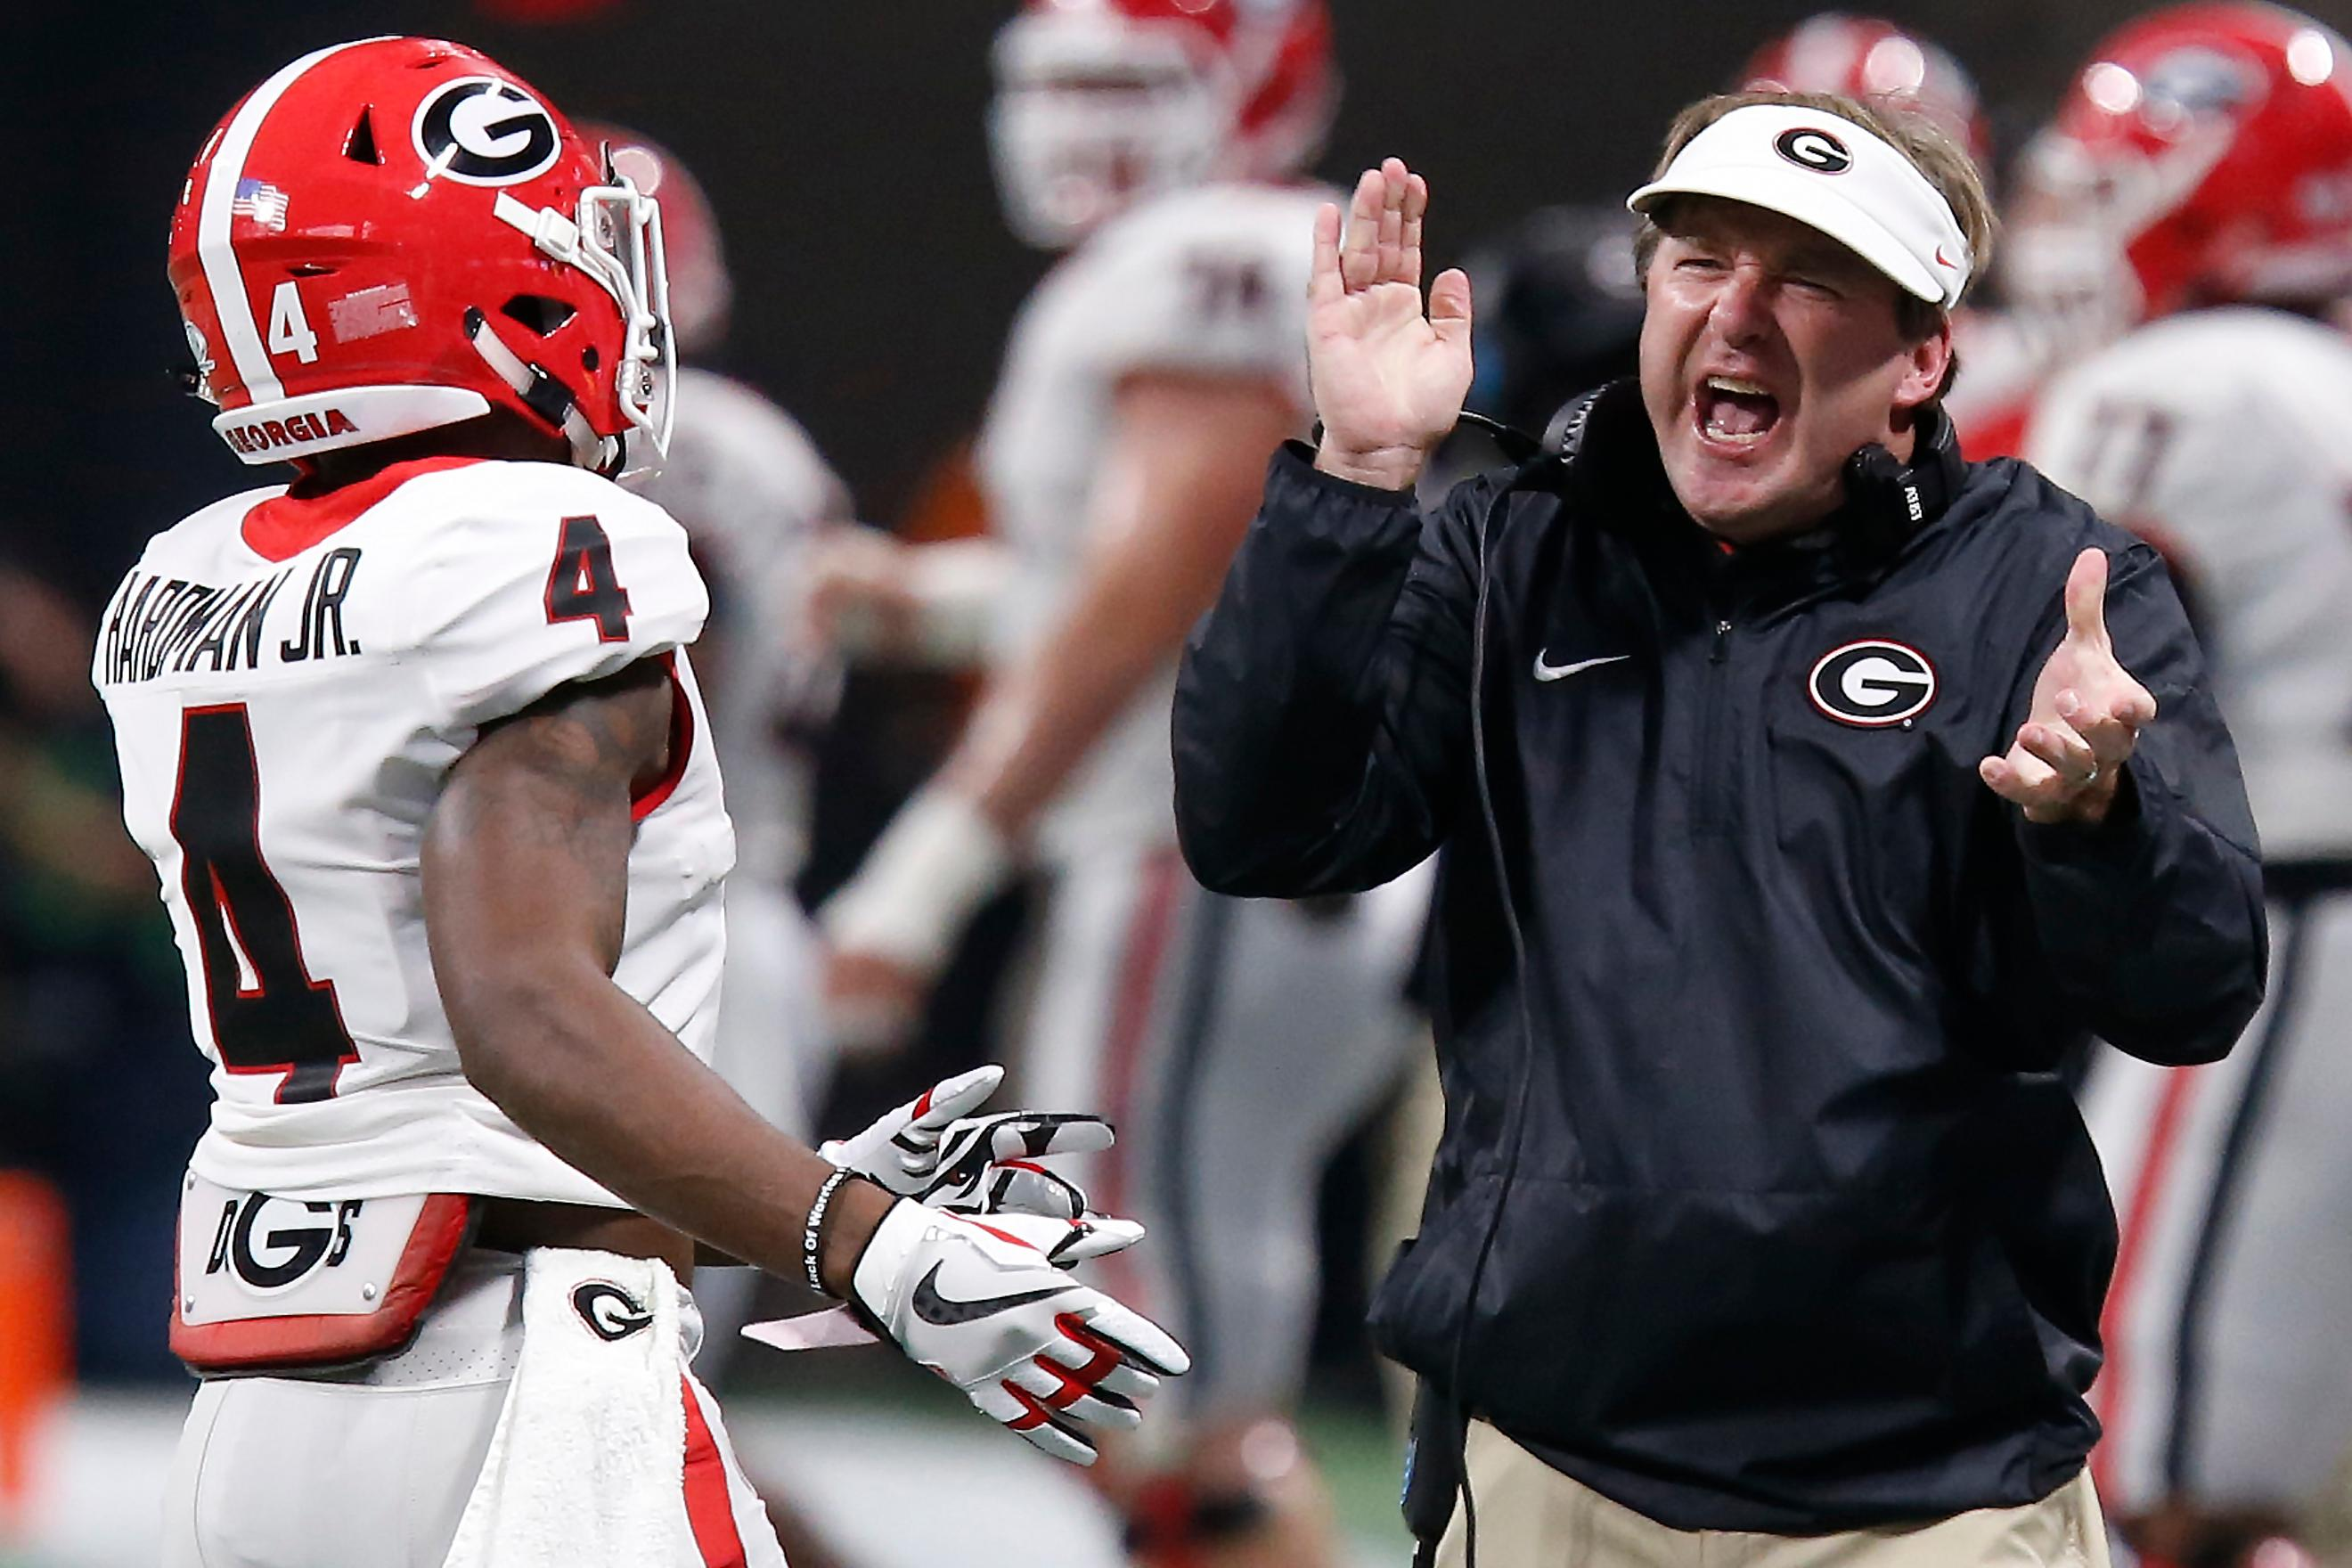 Georgia coach Kirby Smart applauds wide receiver Mecole Hardman (4) during the first half against Auburn during an NCAA college football game for the Southeastern Conference championship, Saturday, Dec. 2, 2017, in Atlanta. (Joshua L. Jones/Athens Banner-Herald via AP)